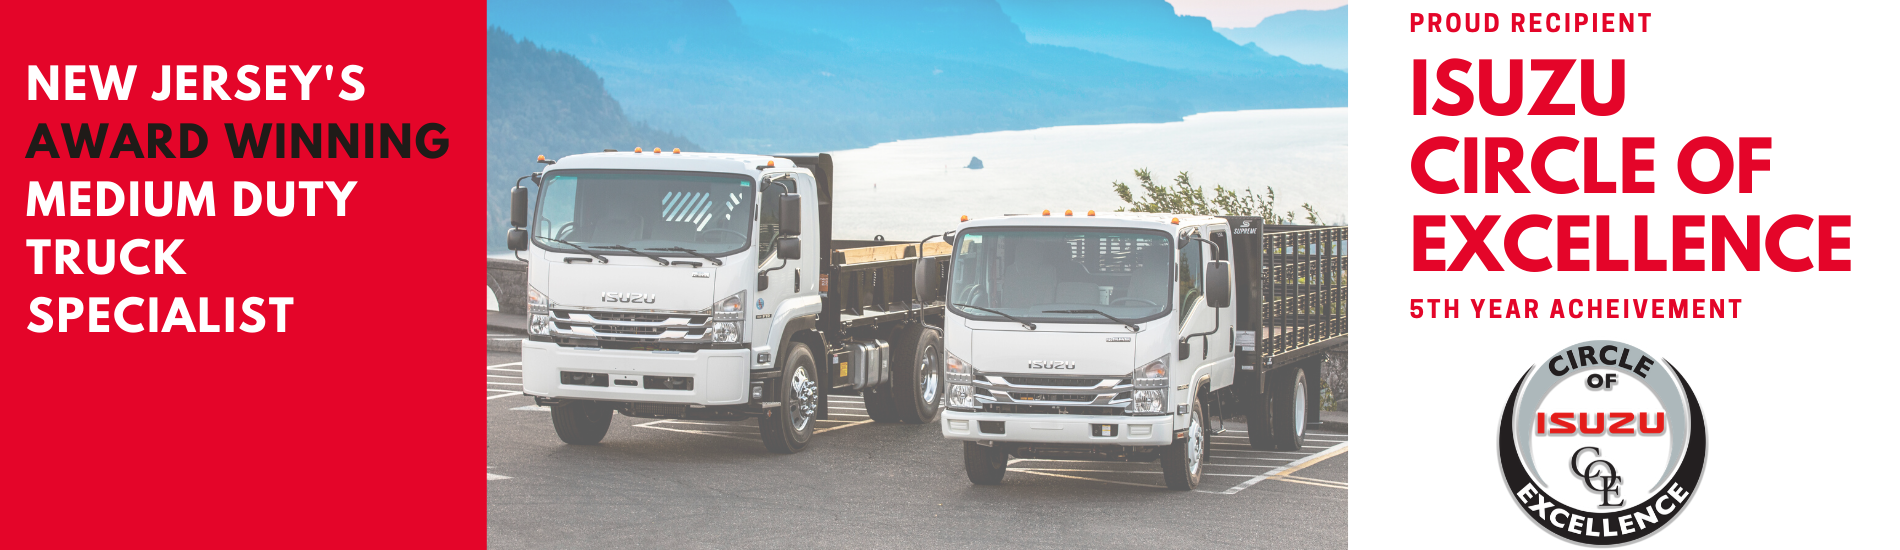 new jersey and new york's medium duty isuzu truck specialist